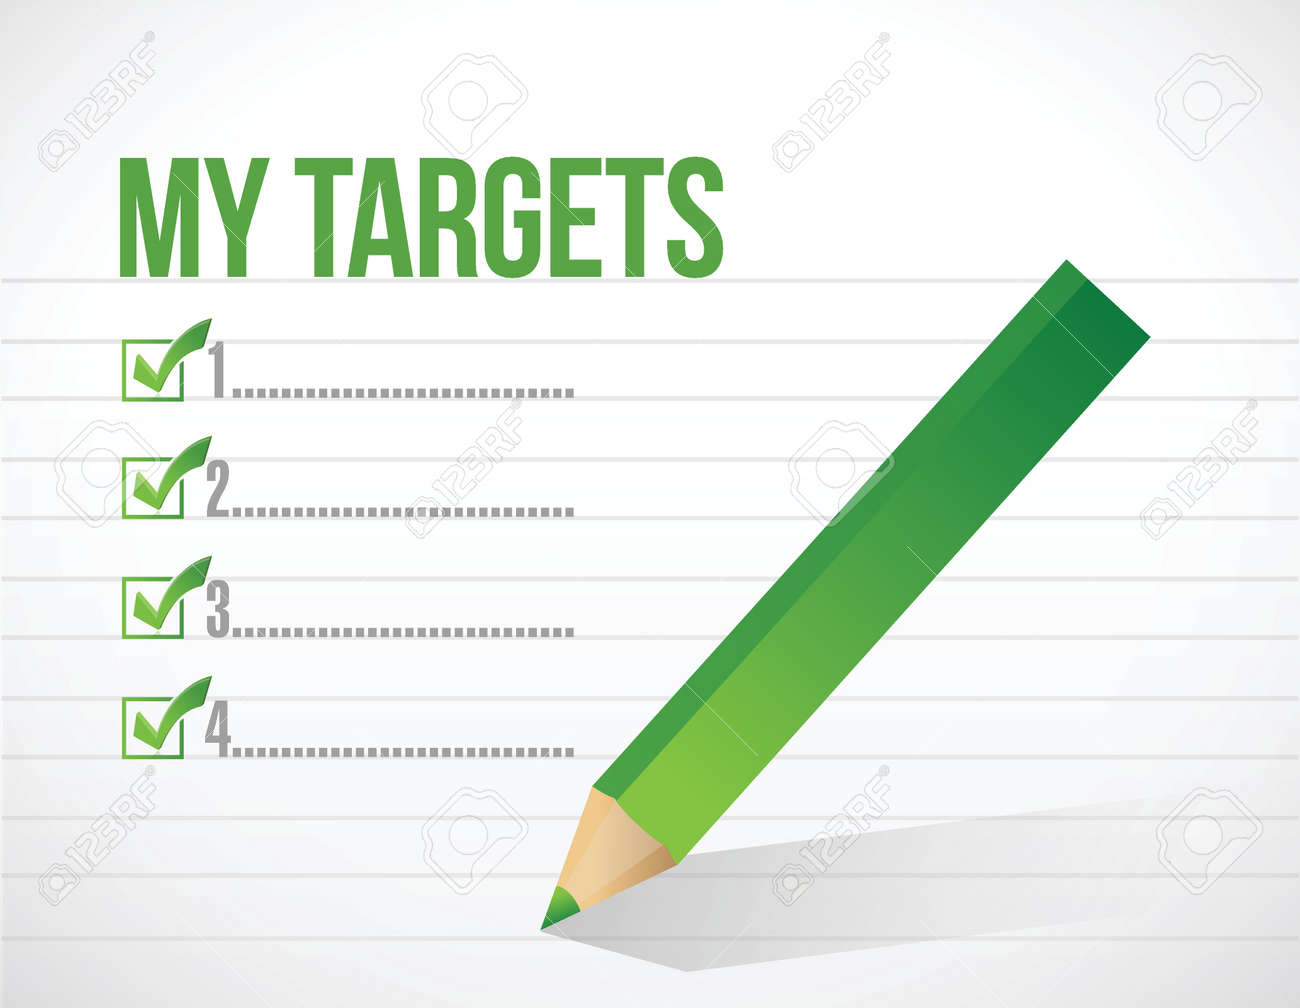 my targets check list illustration design over a white background Stock Vector - 26136334